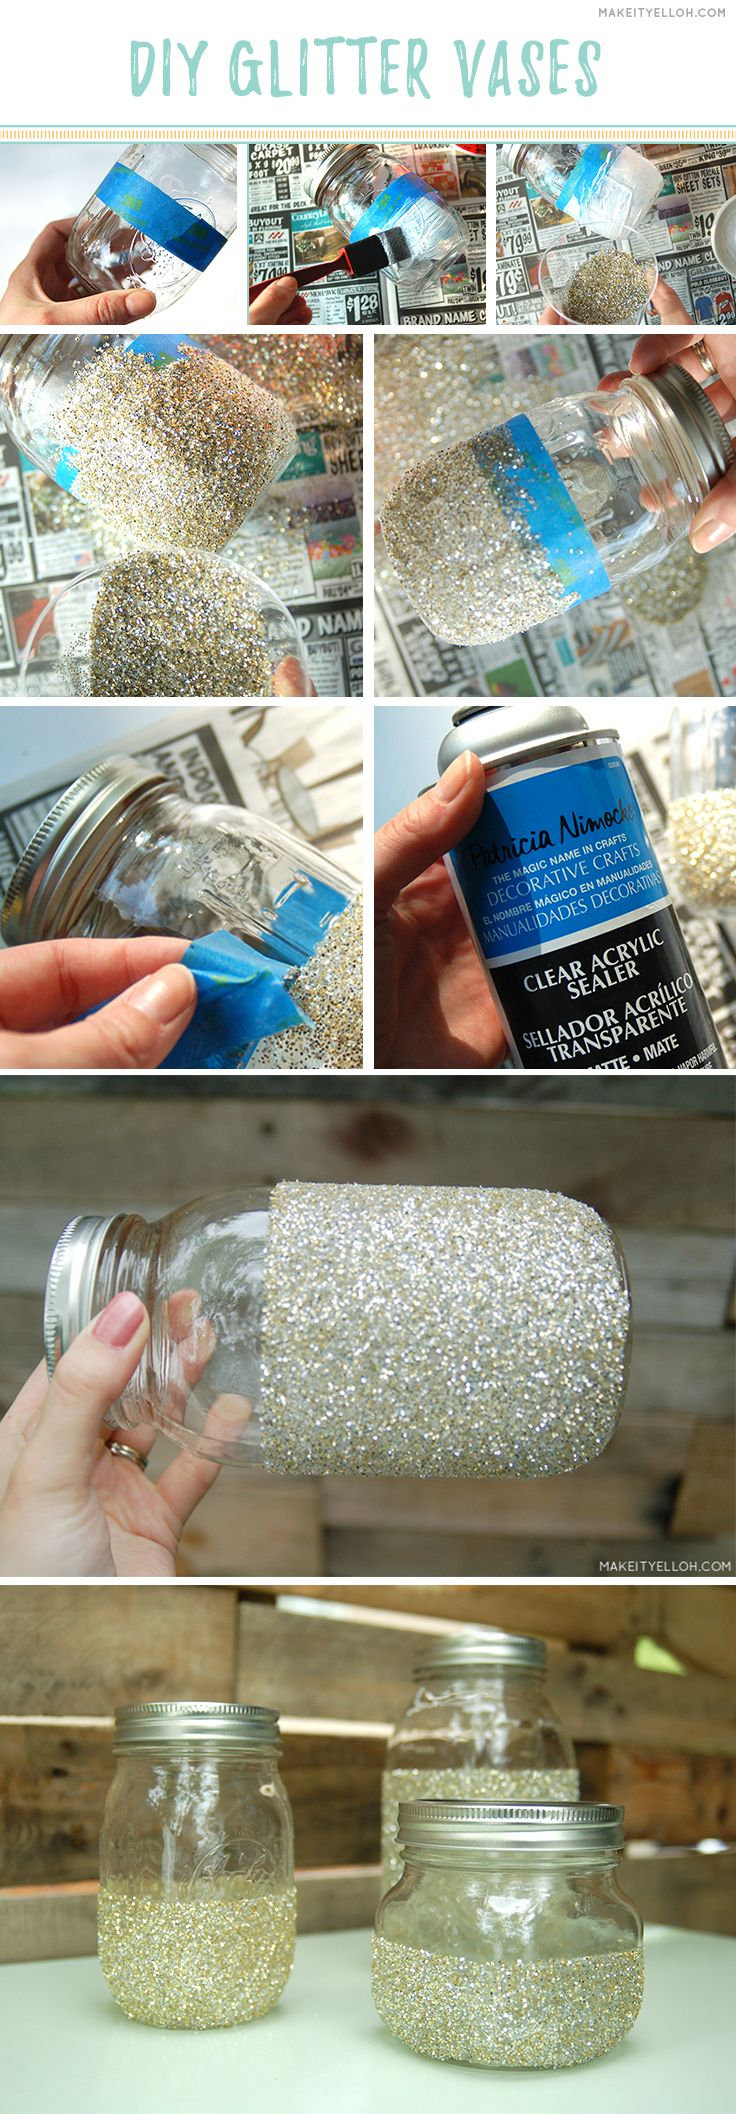 DIY Wedding Shower Glitter Mason Jar Vases